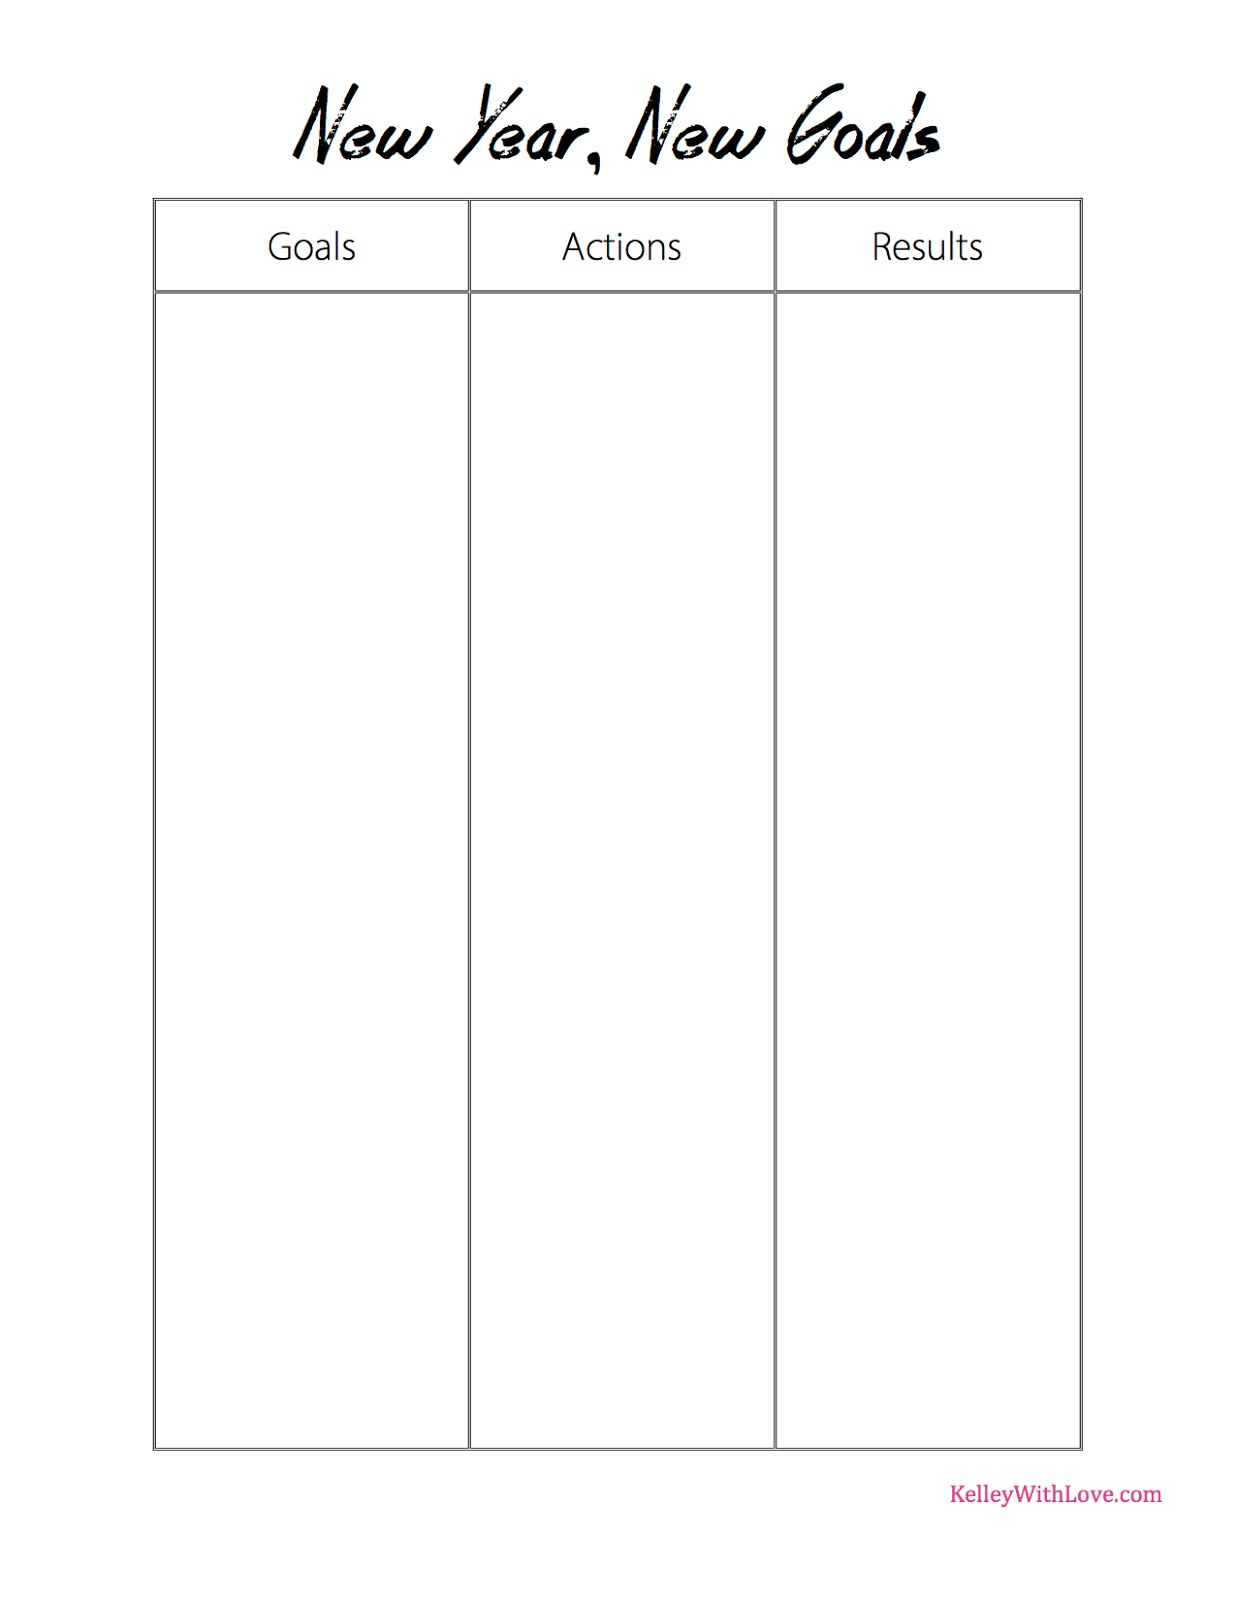 Kelley With Love New Years Goals Printable Worksheets – Goals Worksheet